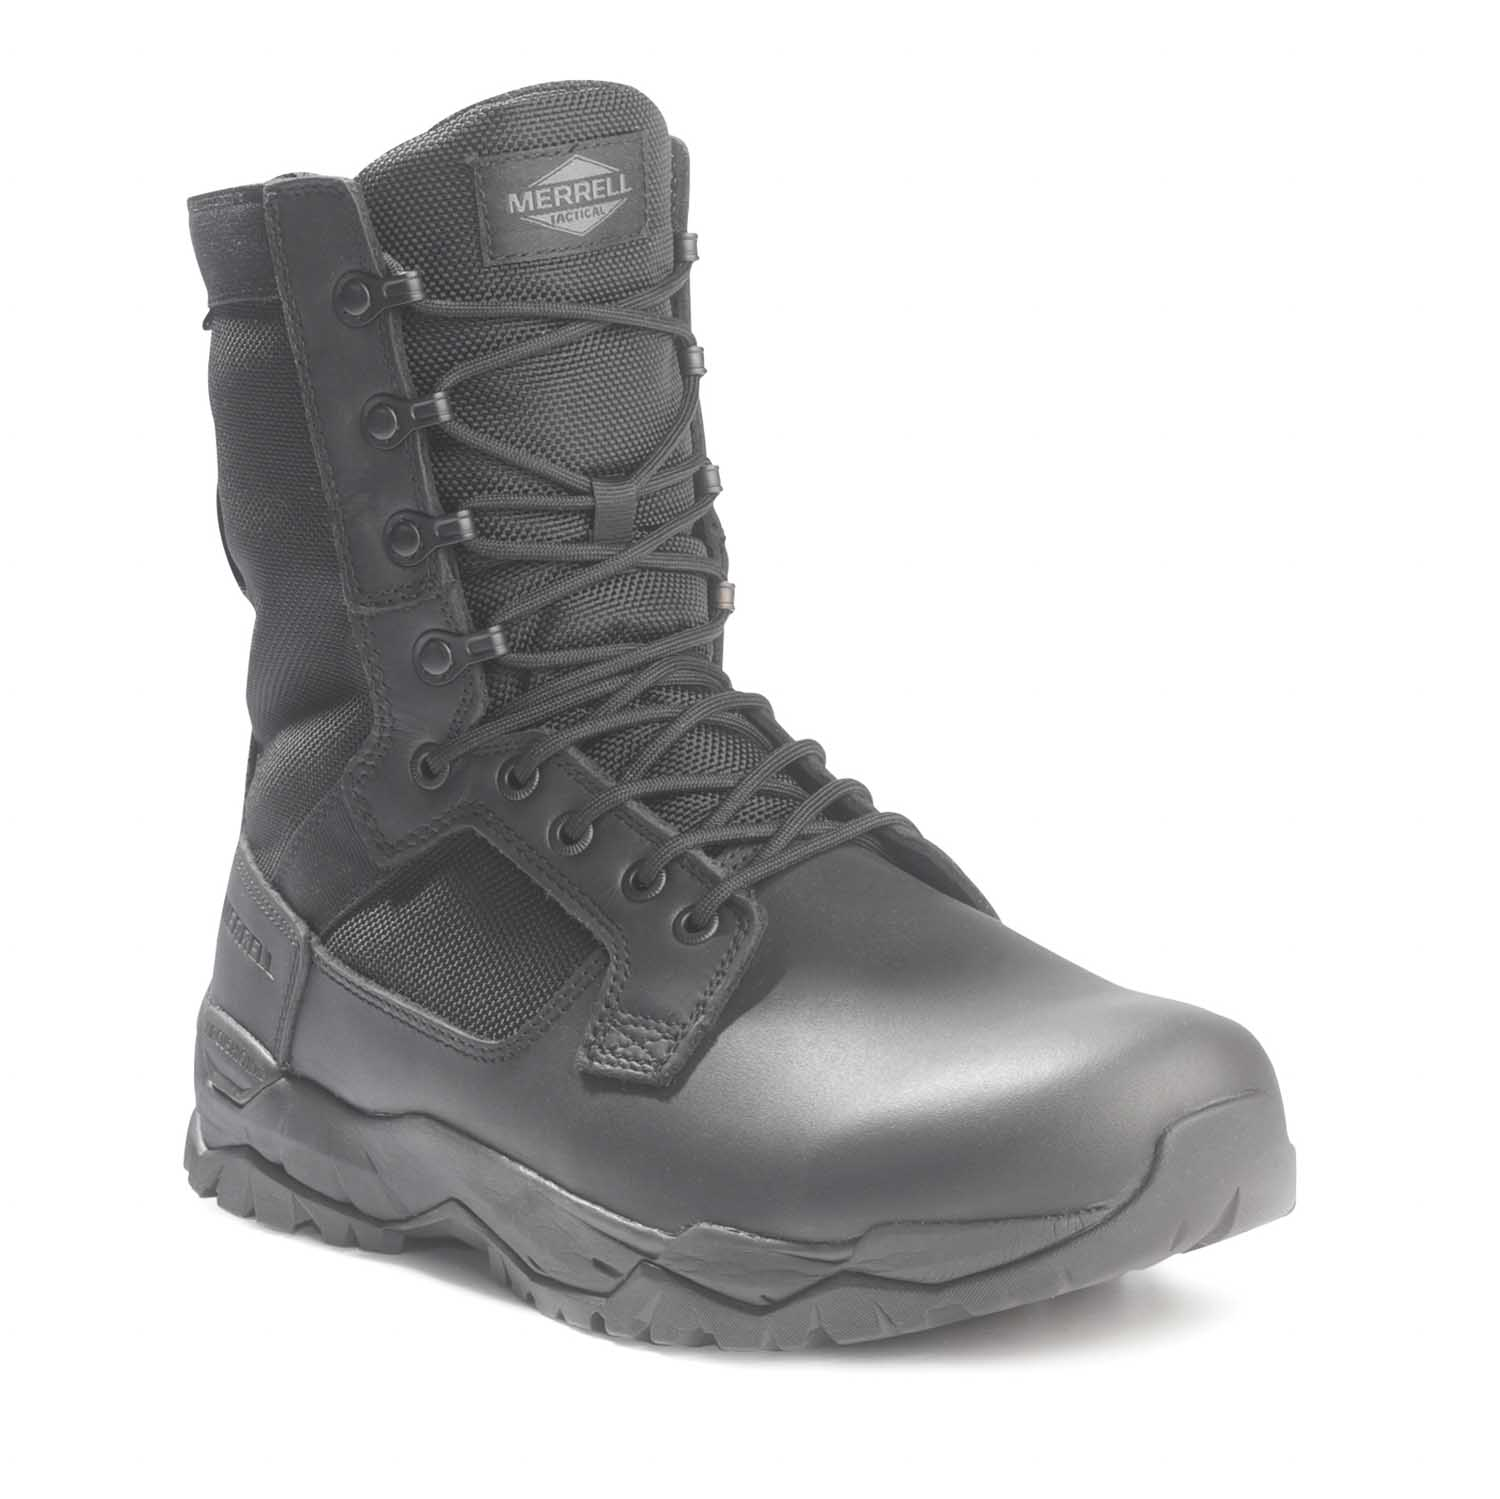 "Merrell MQC Patrol Waterproof 8"" Duty Boot"